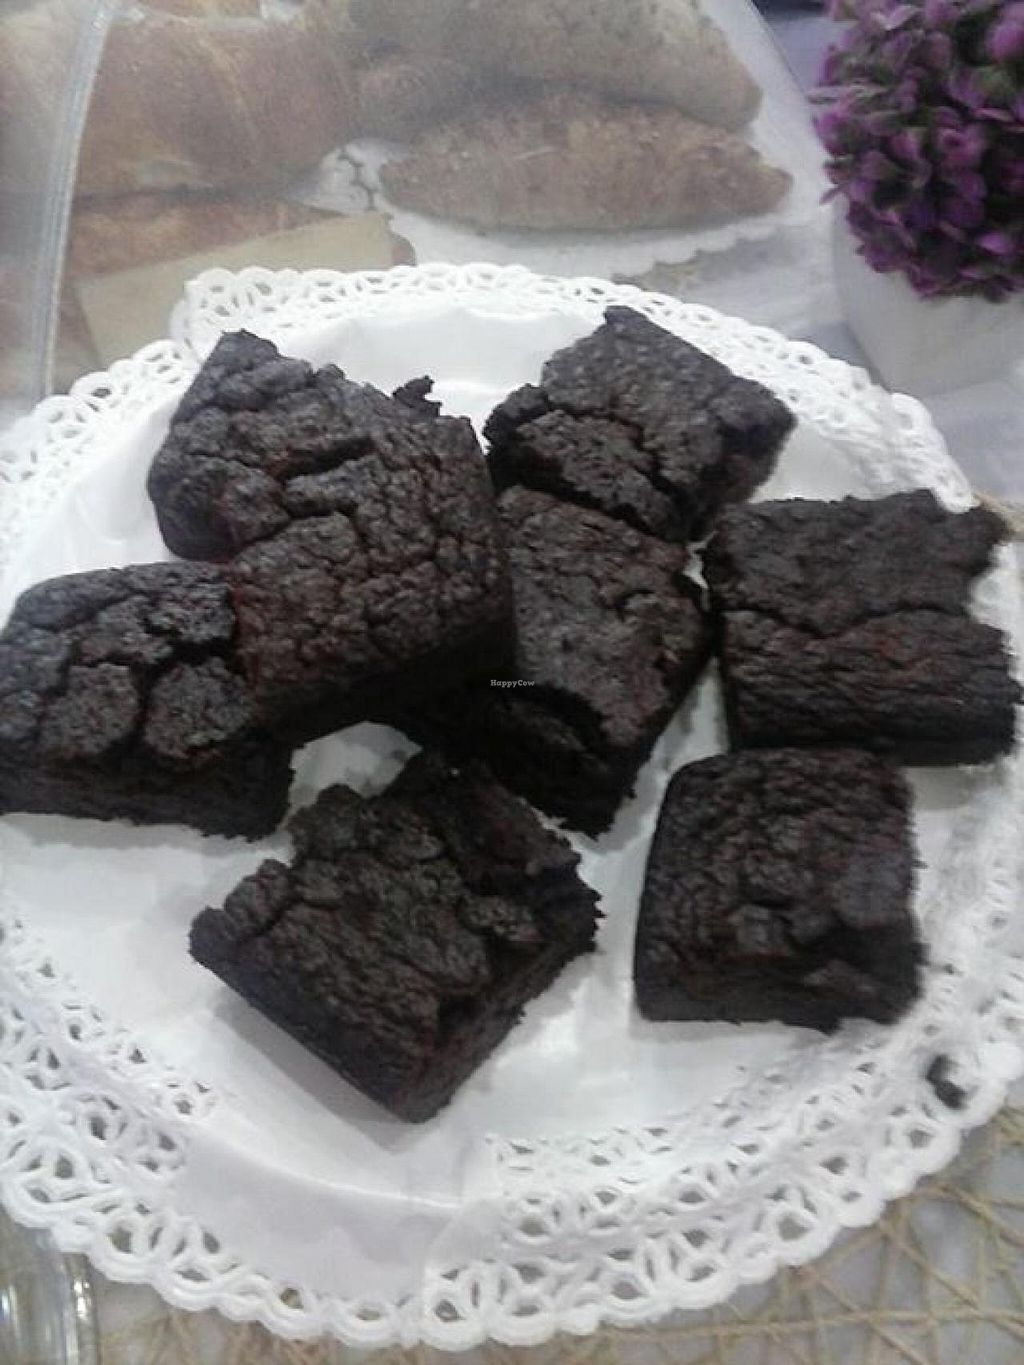 """Photo of Caffetteria Lo Spuntino  by <a href=""""/members/profile/community"""">community</a> <br/>brownies  <br/> April 11, 2015  - <a href='/contact/abuse/image/57132/98574'>Report</a>"""